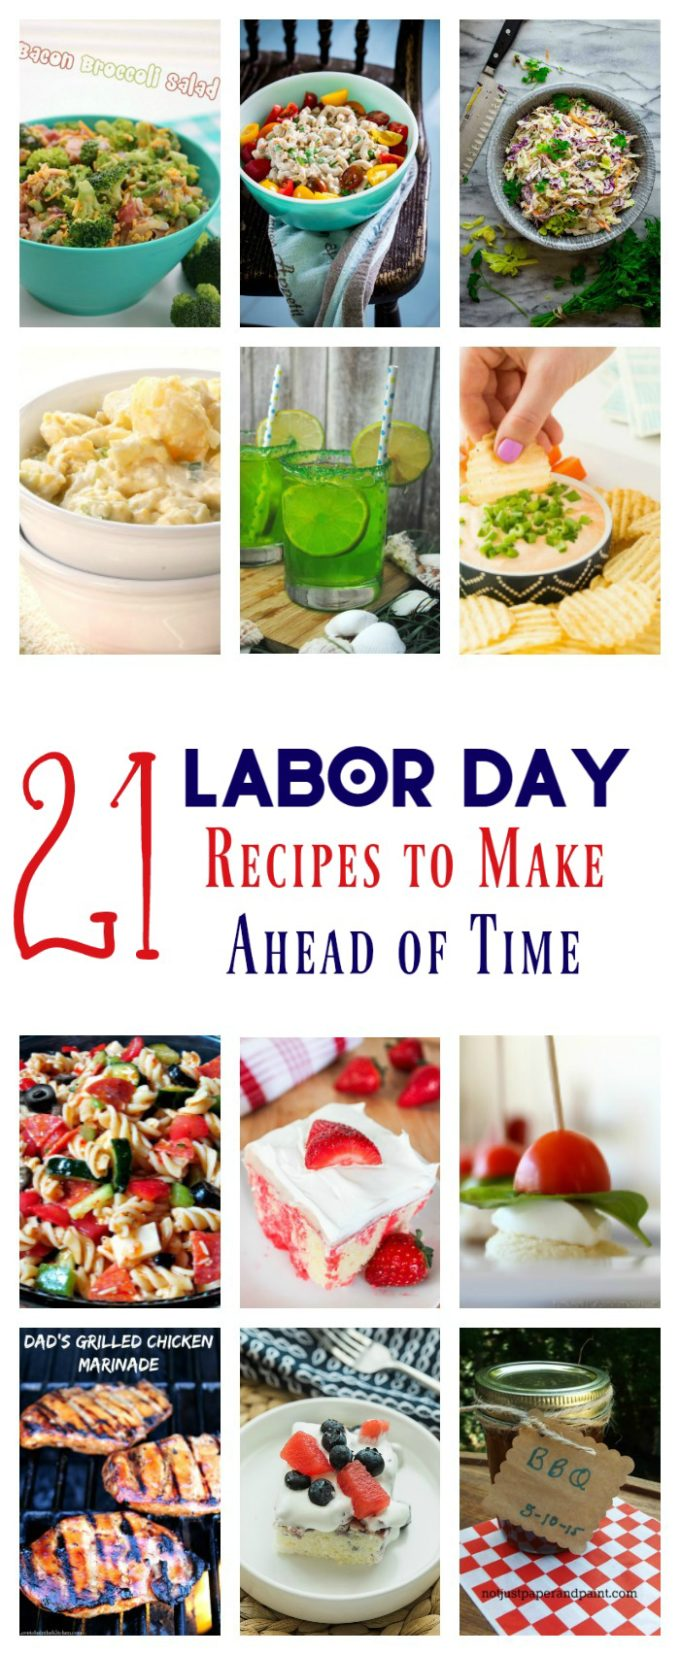 21 Labor Day Recipes That You Can Make Ahead of Time